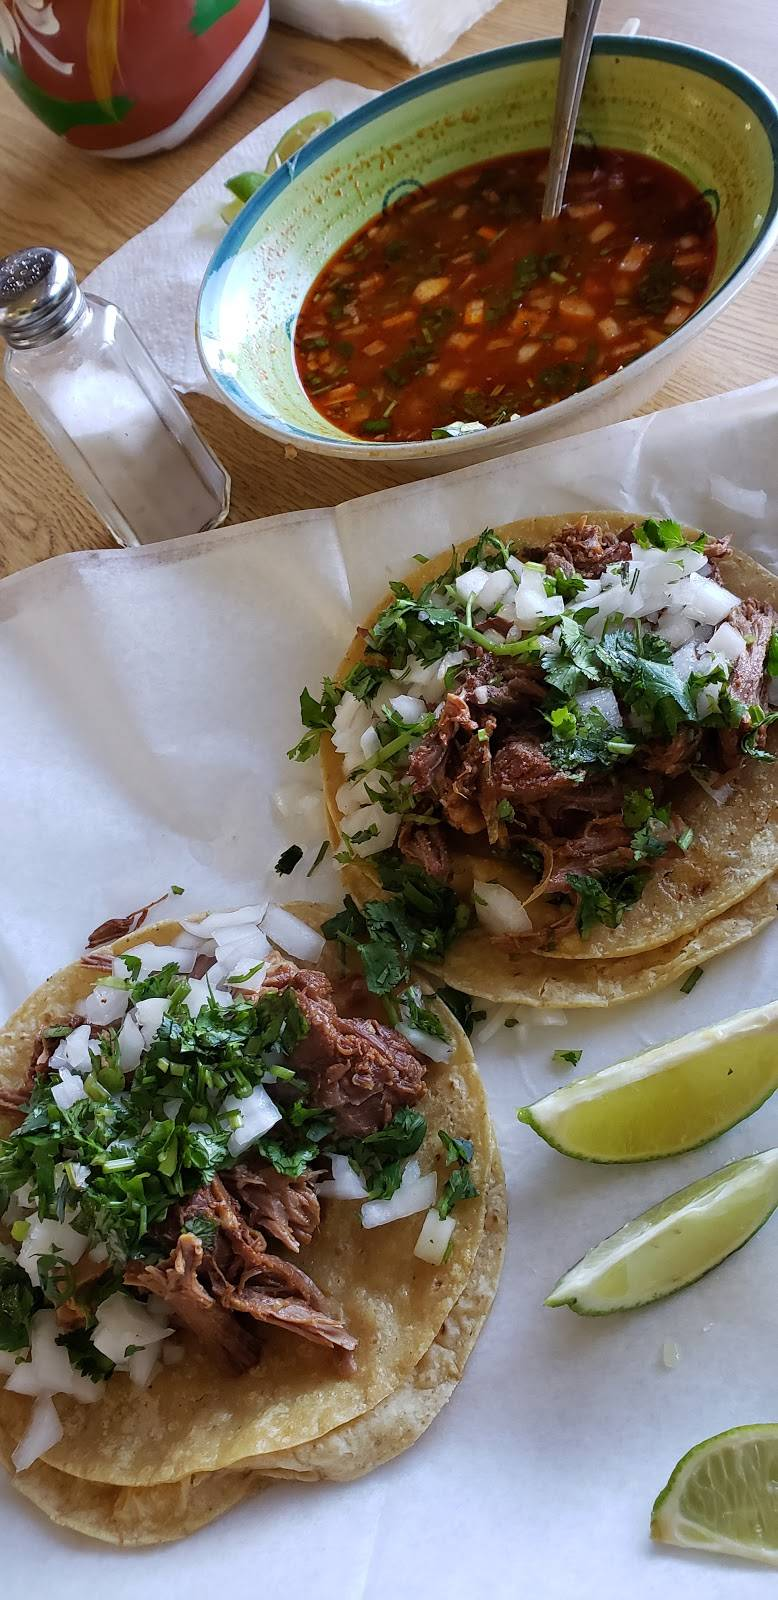 Taquería El Valle Market | restaurant | 595 N Pinecrest Rd, Bolingbrook, IL 60440, USA | 8156038032 OR +1 815-603-8032